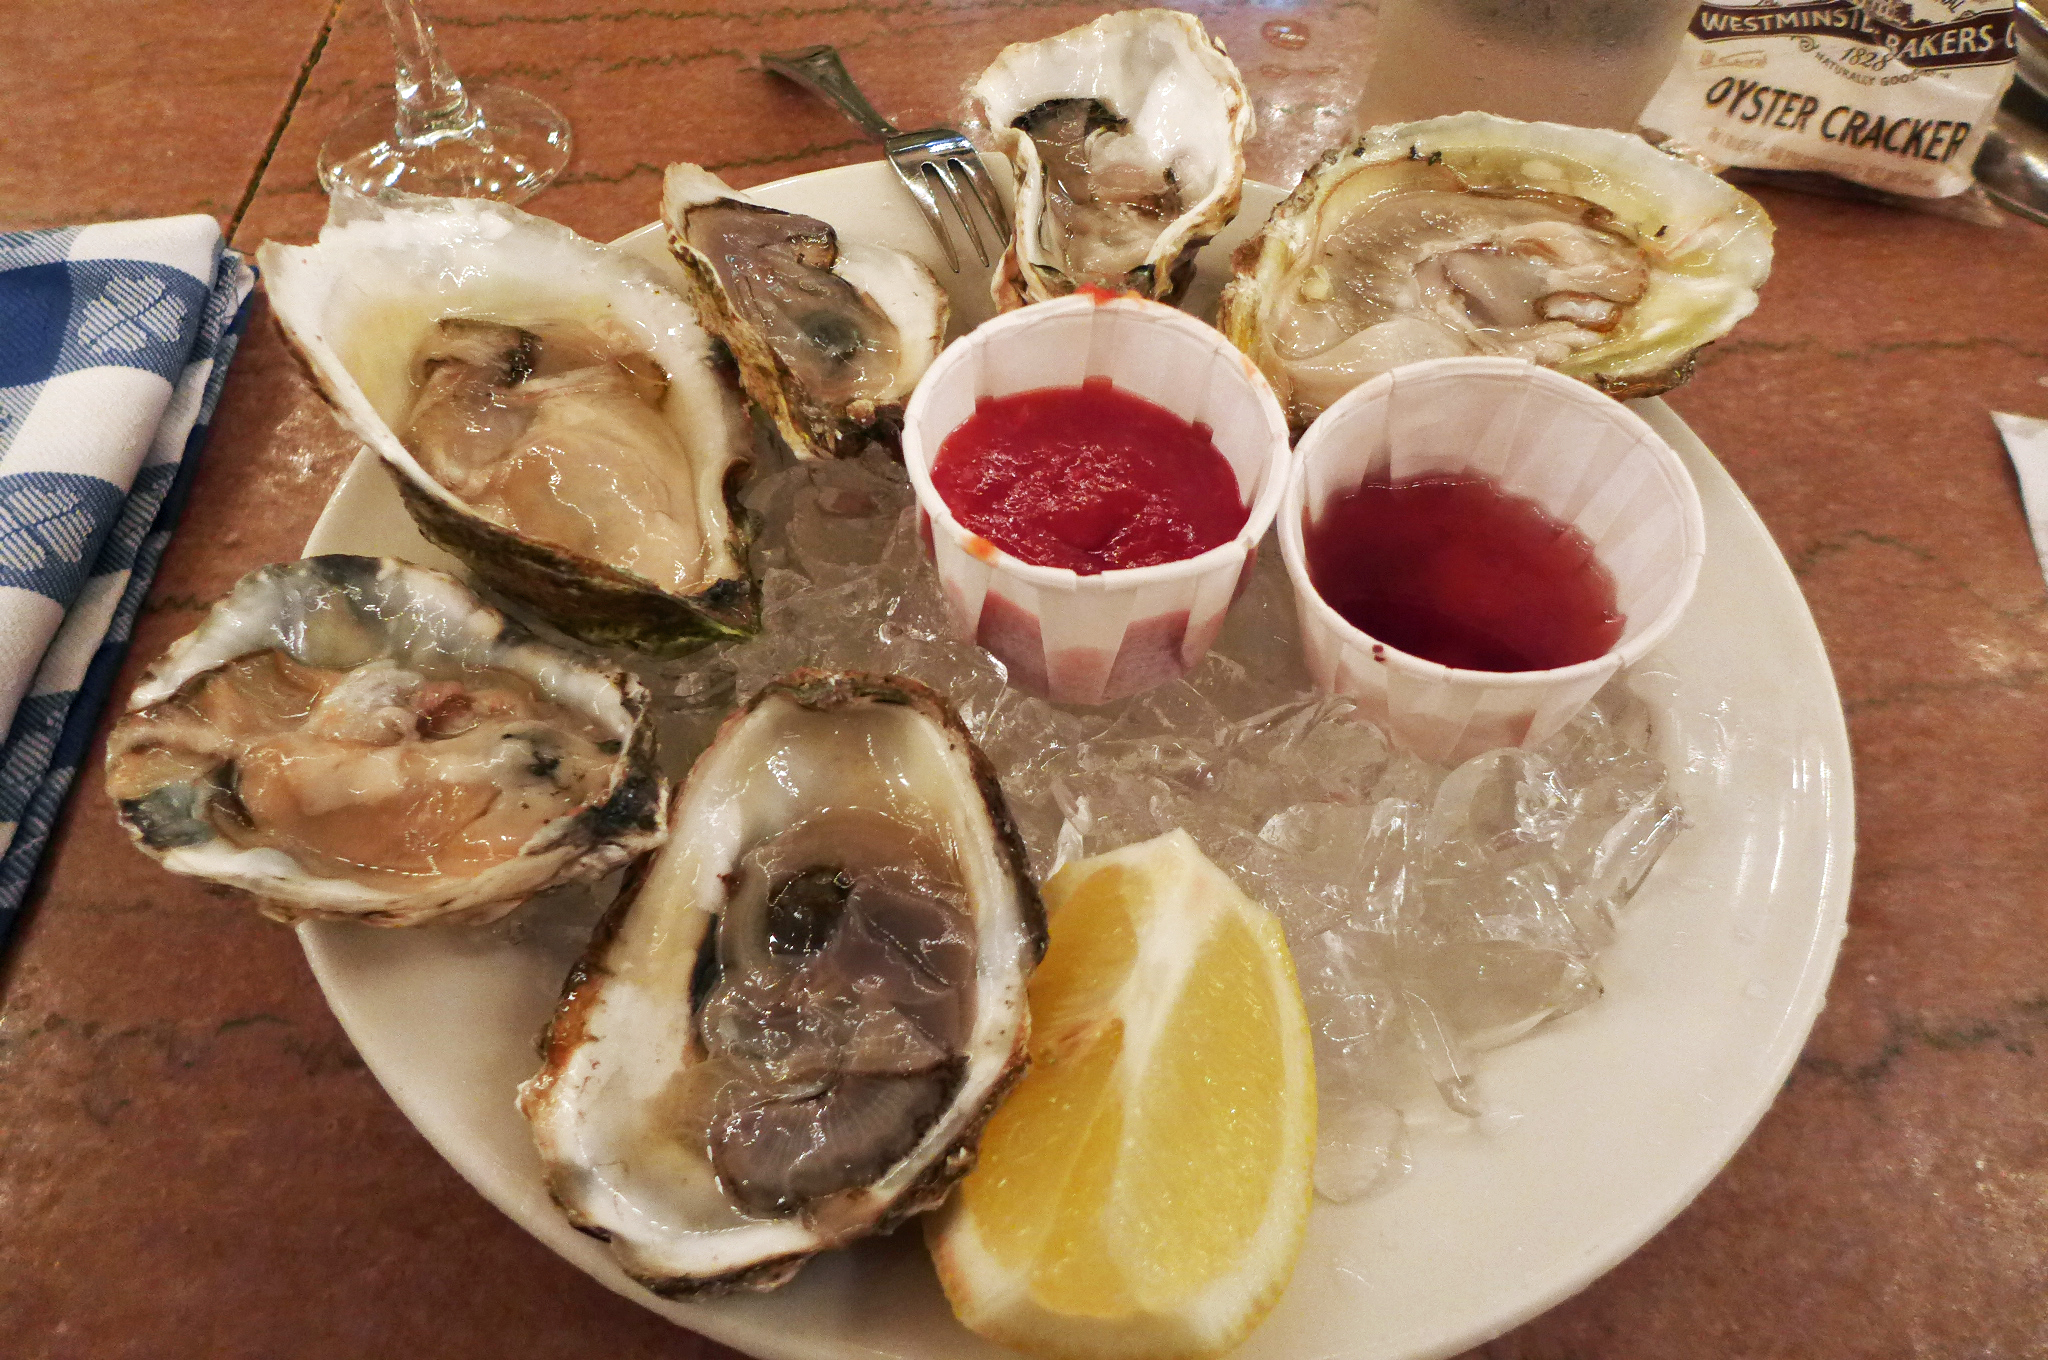 Six oysters of different shapes and sizes, on a plate lined with ice, served with a lemon wedge...